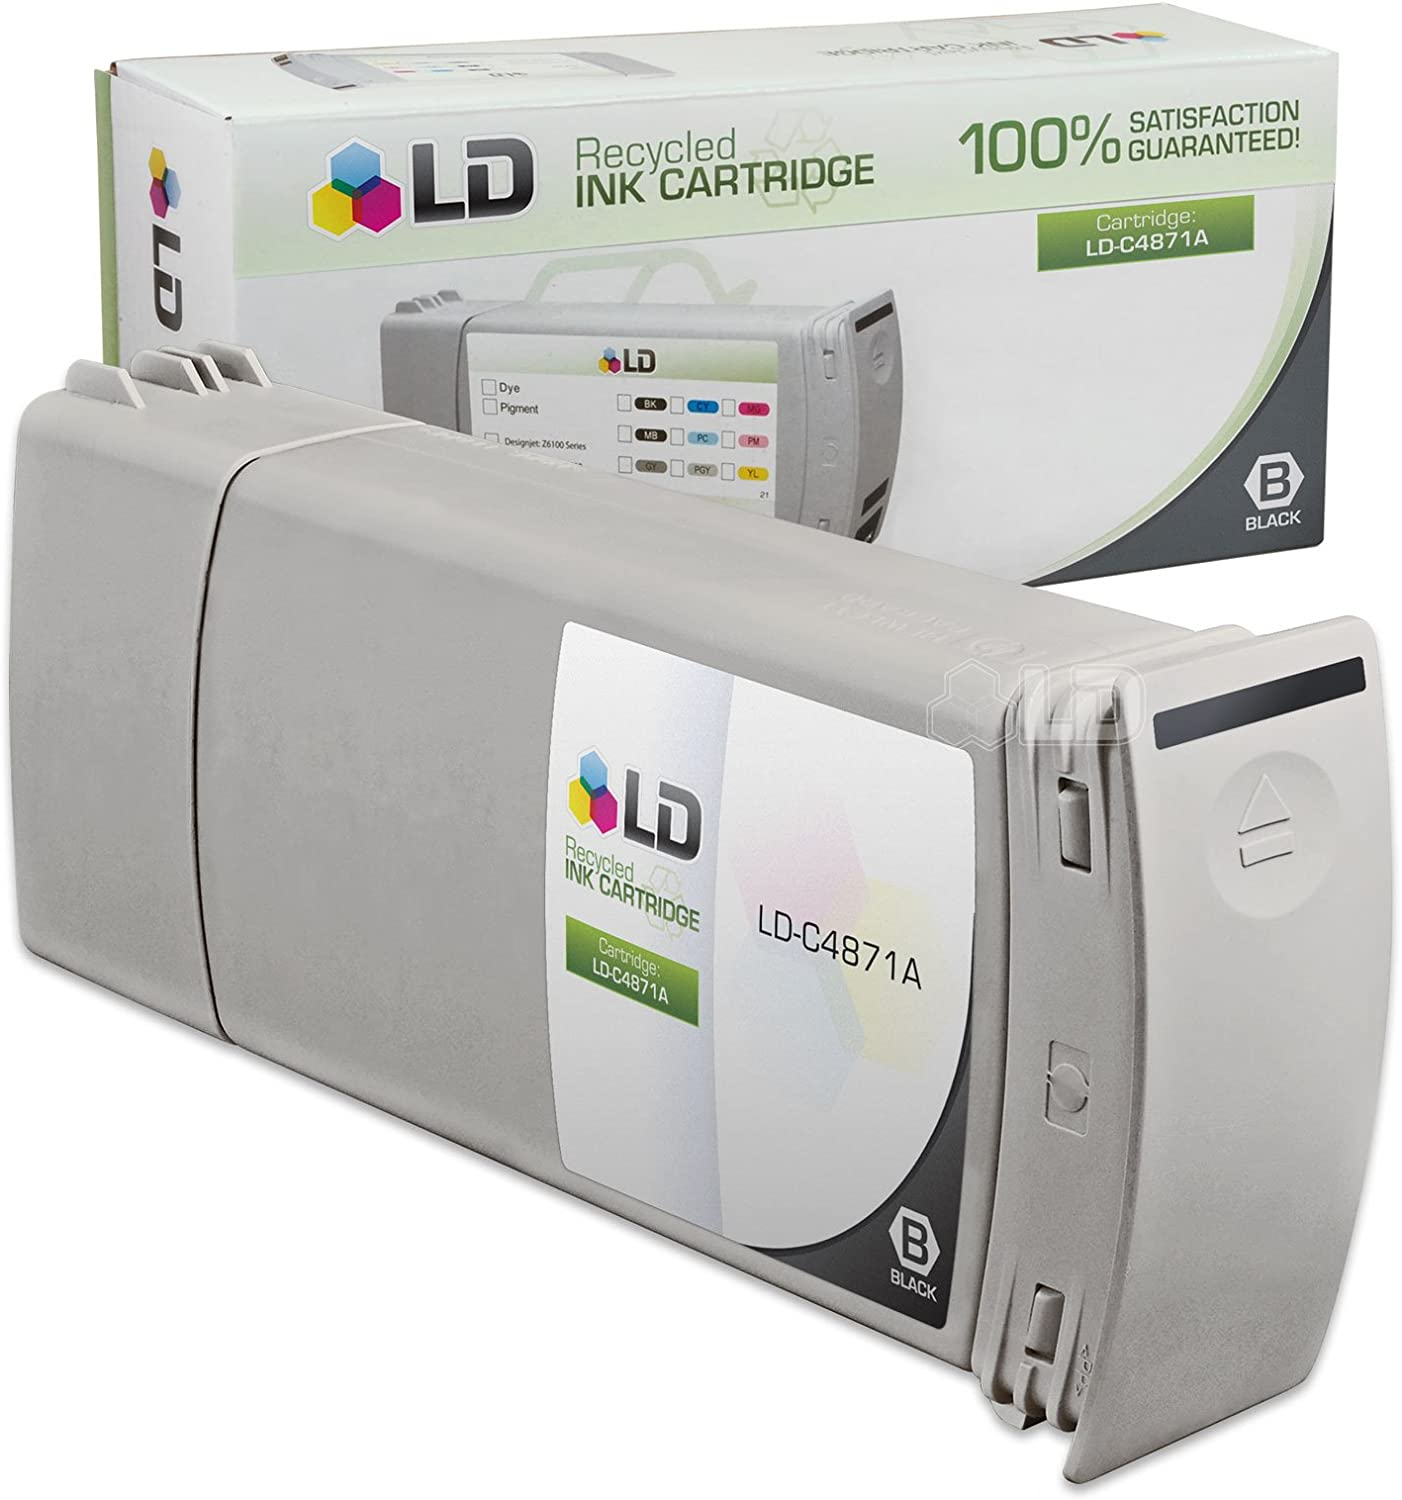 C4871A Black WORLDS OF CARTRIDGES Remanufactured Ink Cartridge Replacement for HP 80 for Use in DesignJet 1050//1055